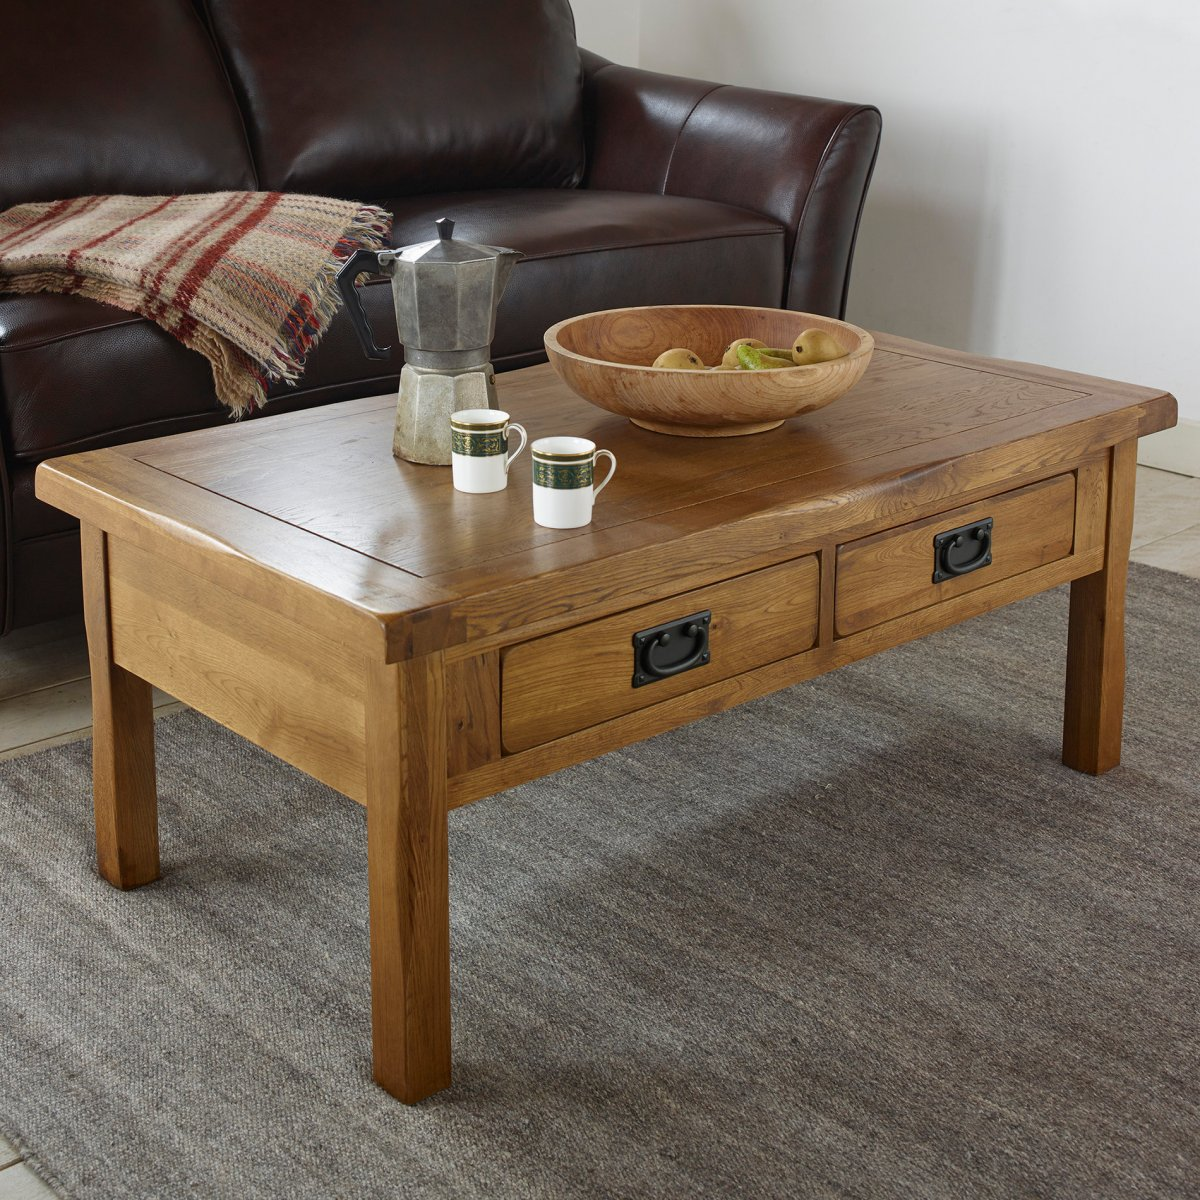 Coffee Table With Drawers: Original Rustic 4 Drawer Coffee Table In Solid Oak